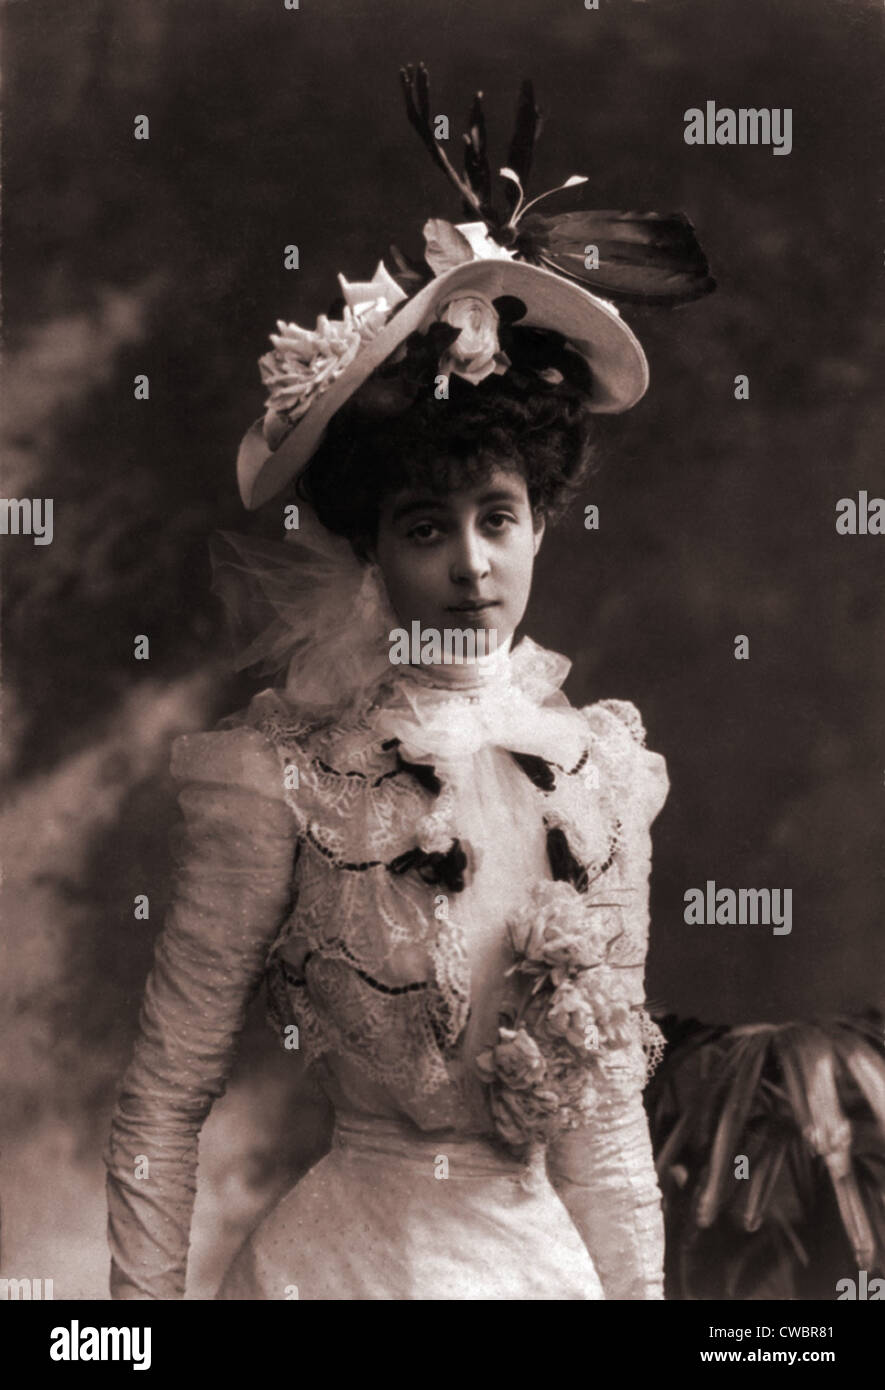 Consuelo Vanderbilt (1877-1964), as a young women, when she entered into a loveless arranged marriage with the Charles - Stock Image